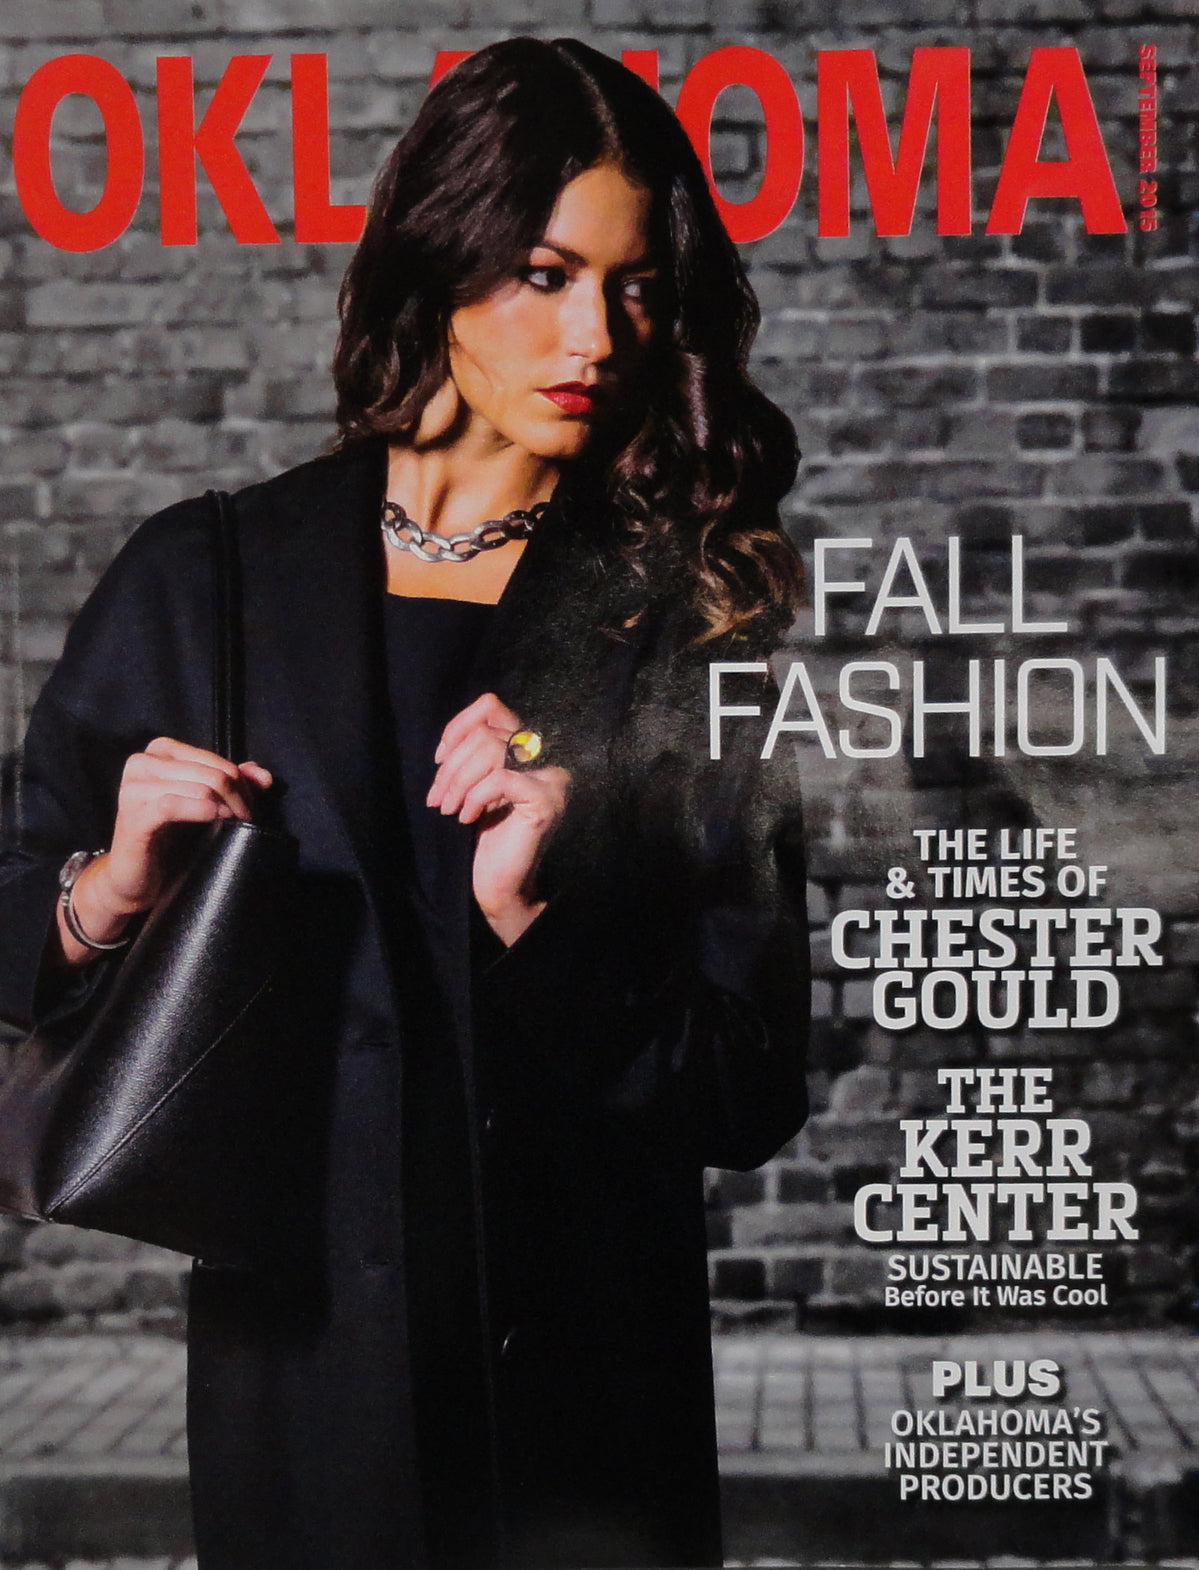 OklahomaMagazine September 2015 Cover